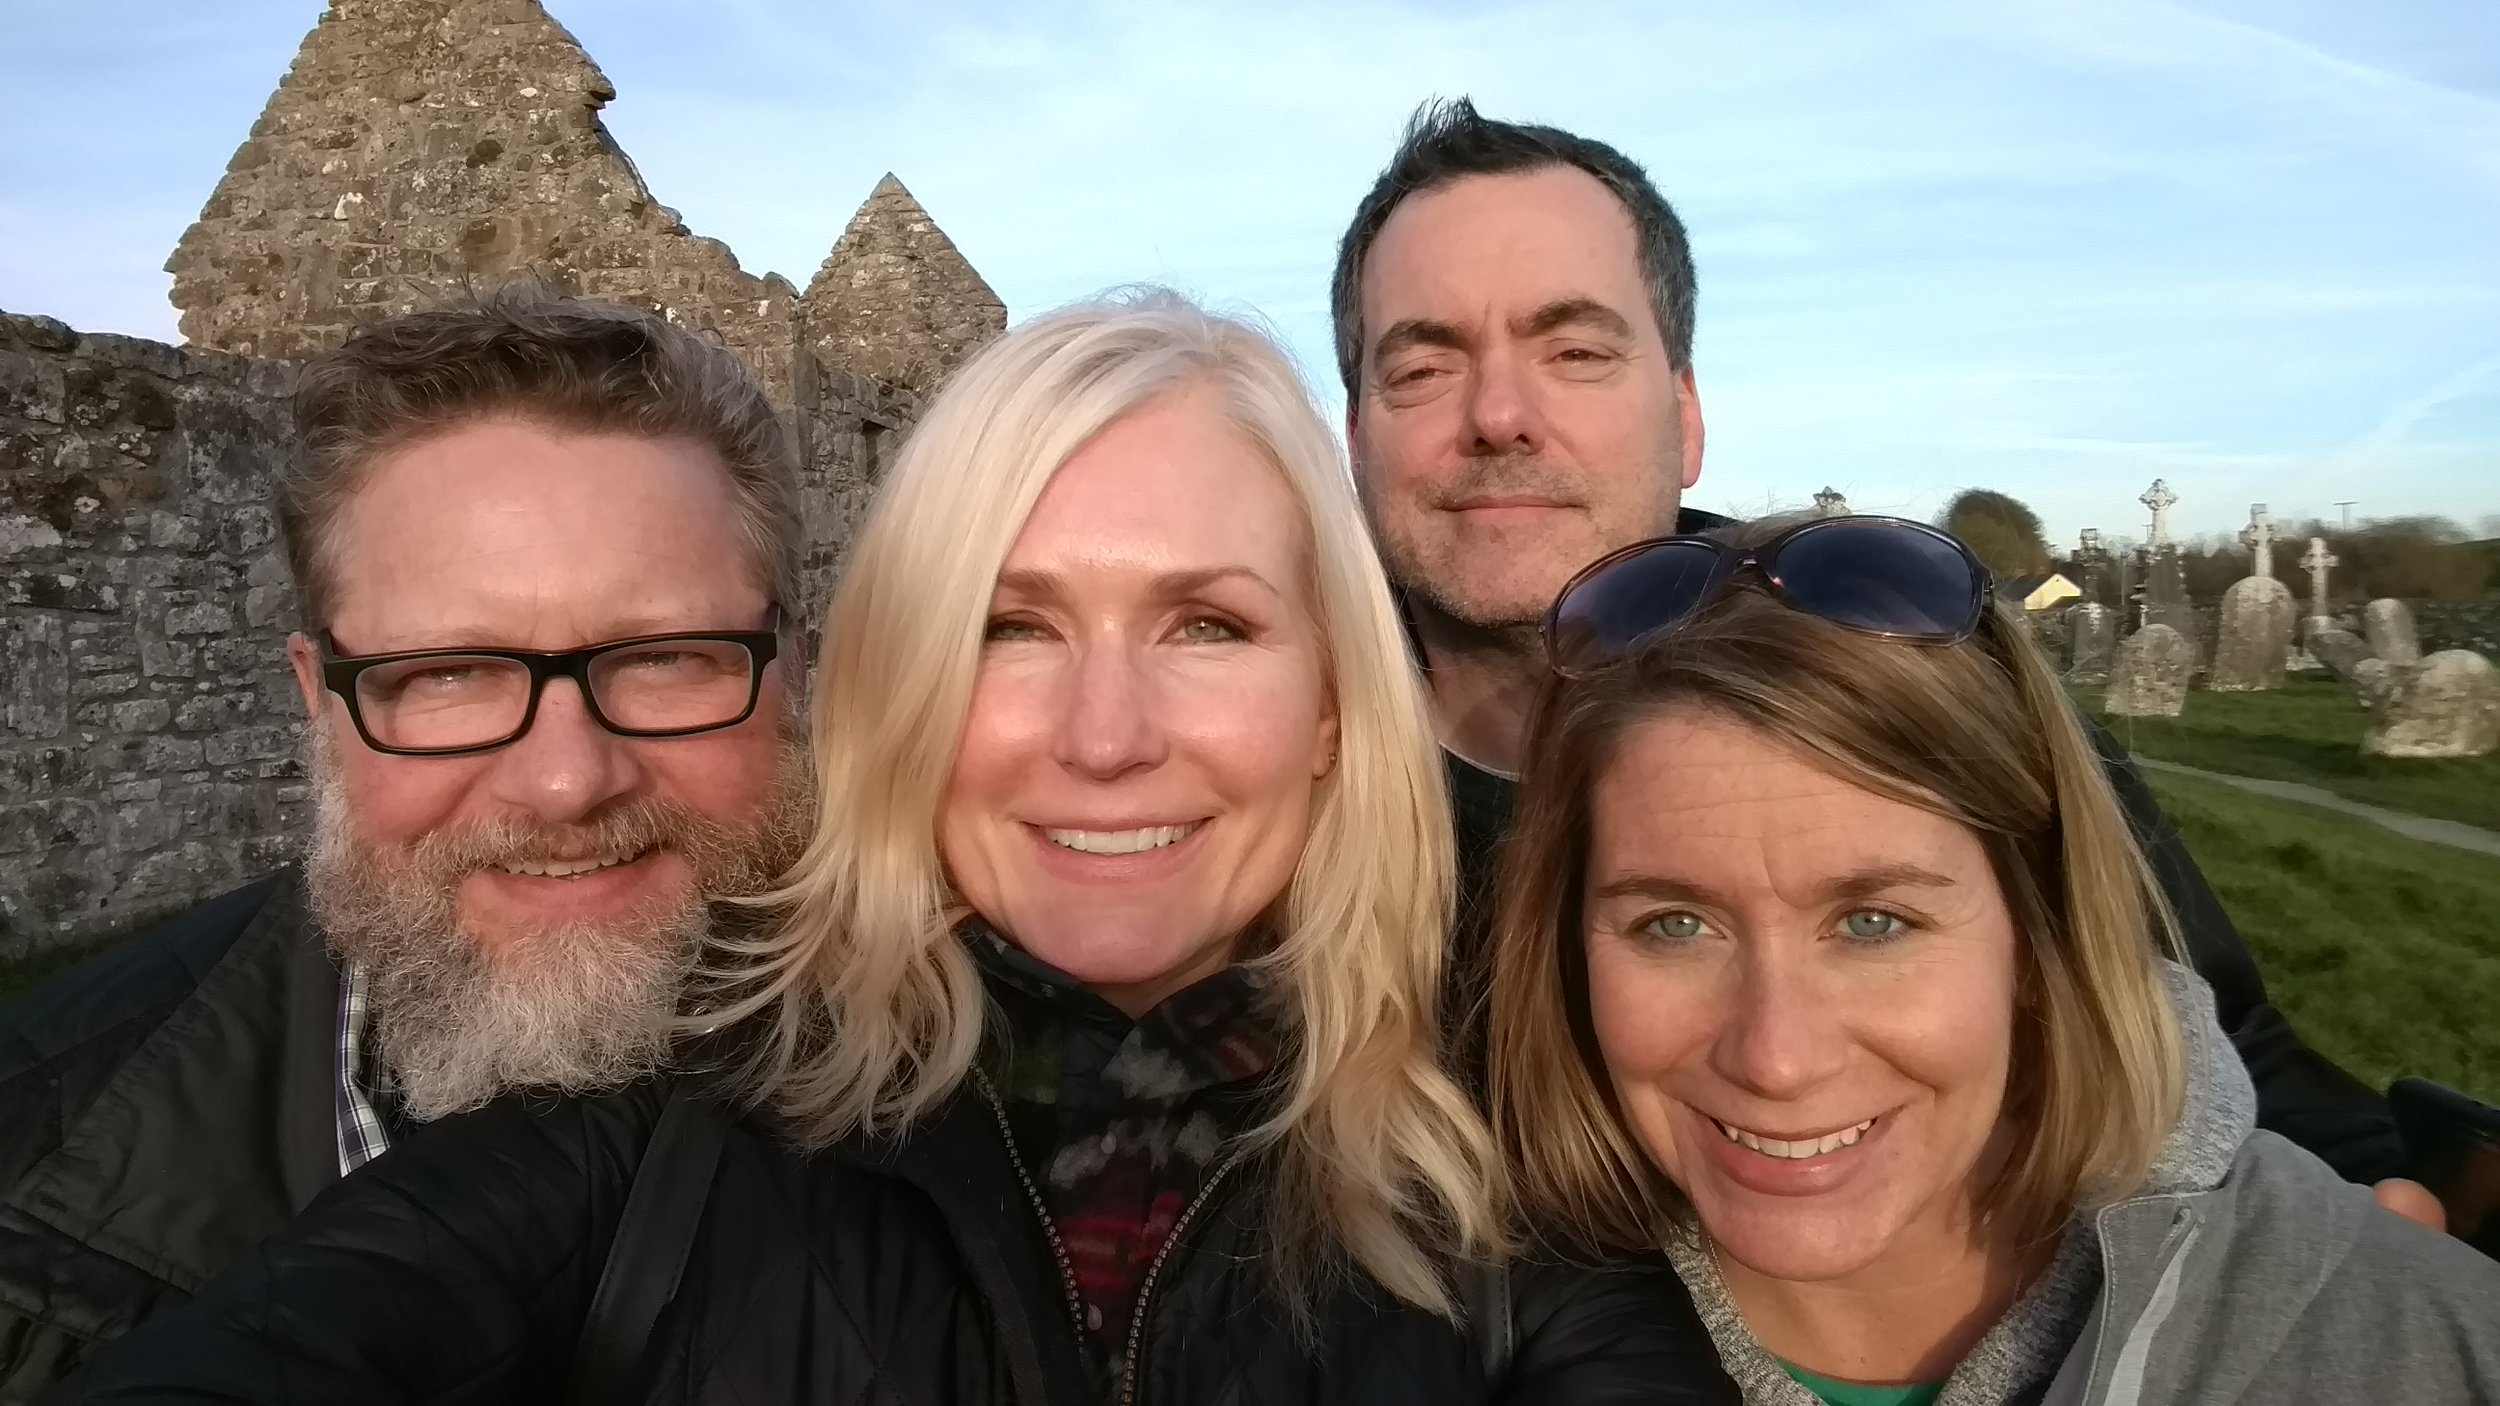 Smiling into the setting sun, Clonmacnoise